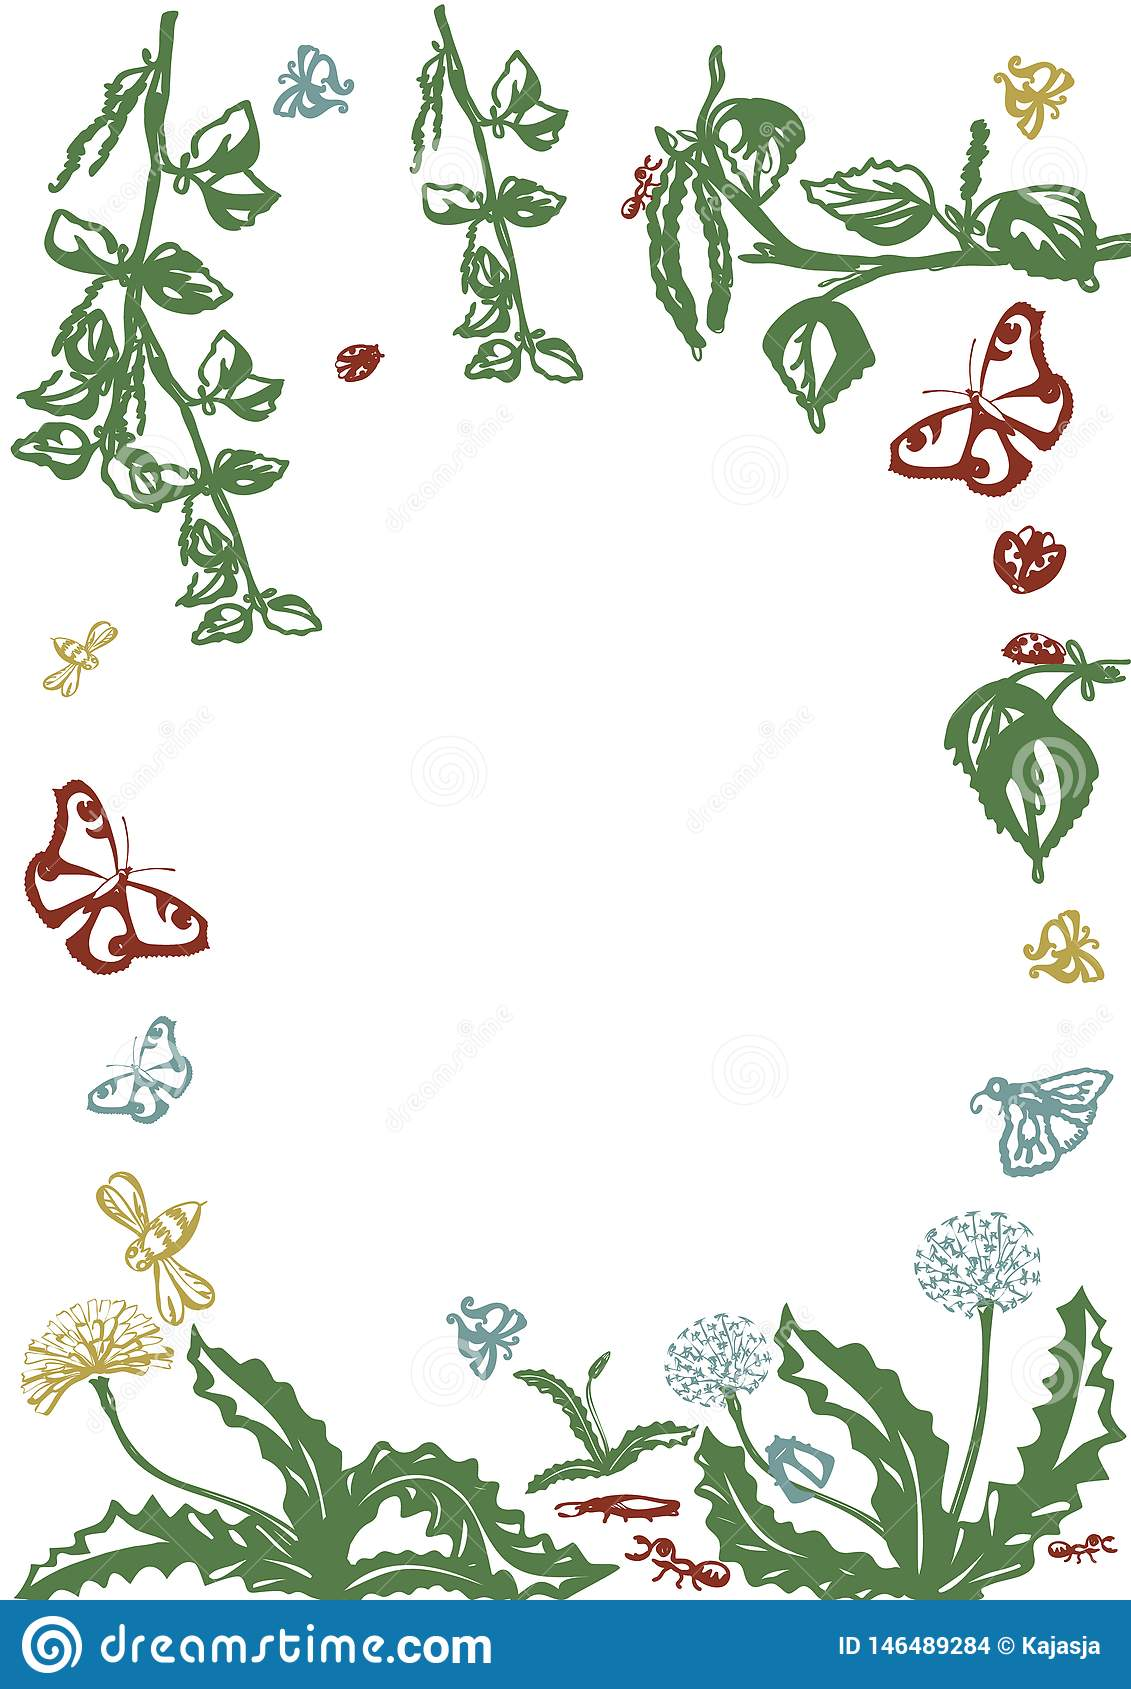 Vector floral set. Graphic collection with leaves and flowers, drawing elements. Spring or summer design for invitation, wedding